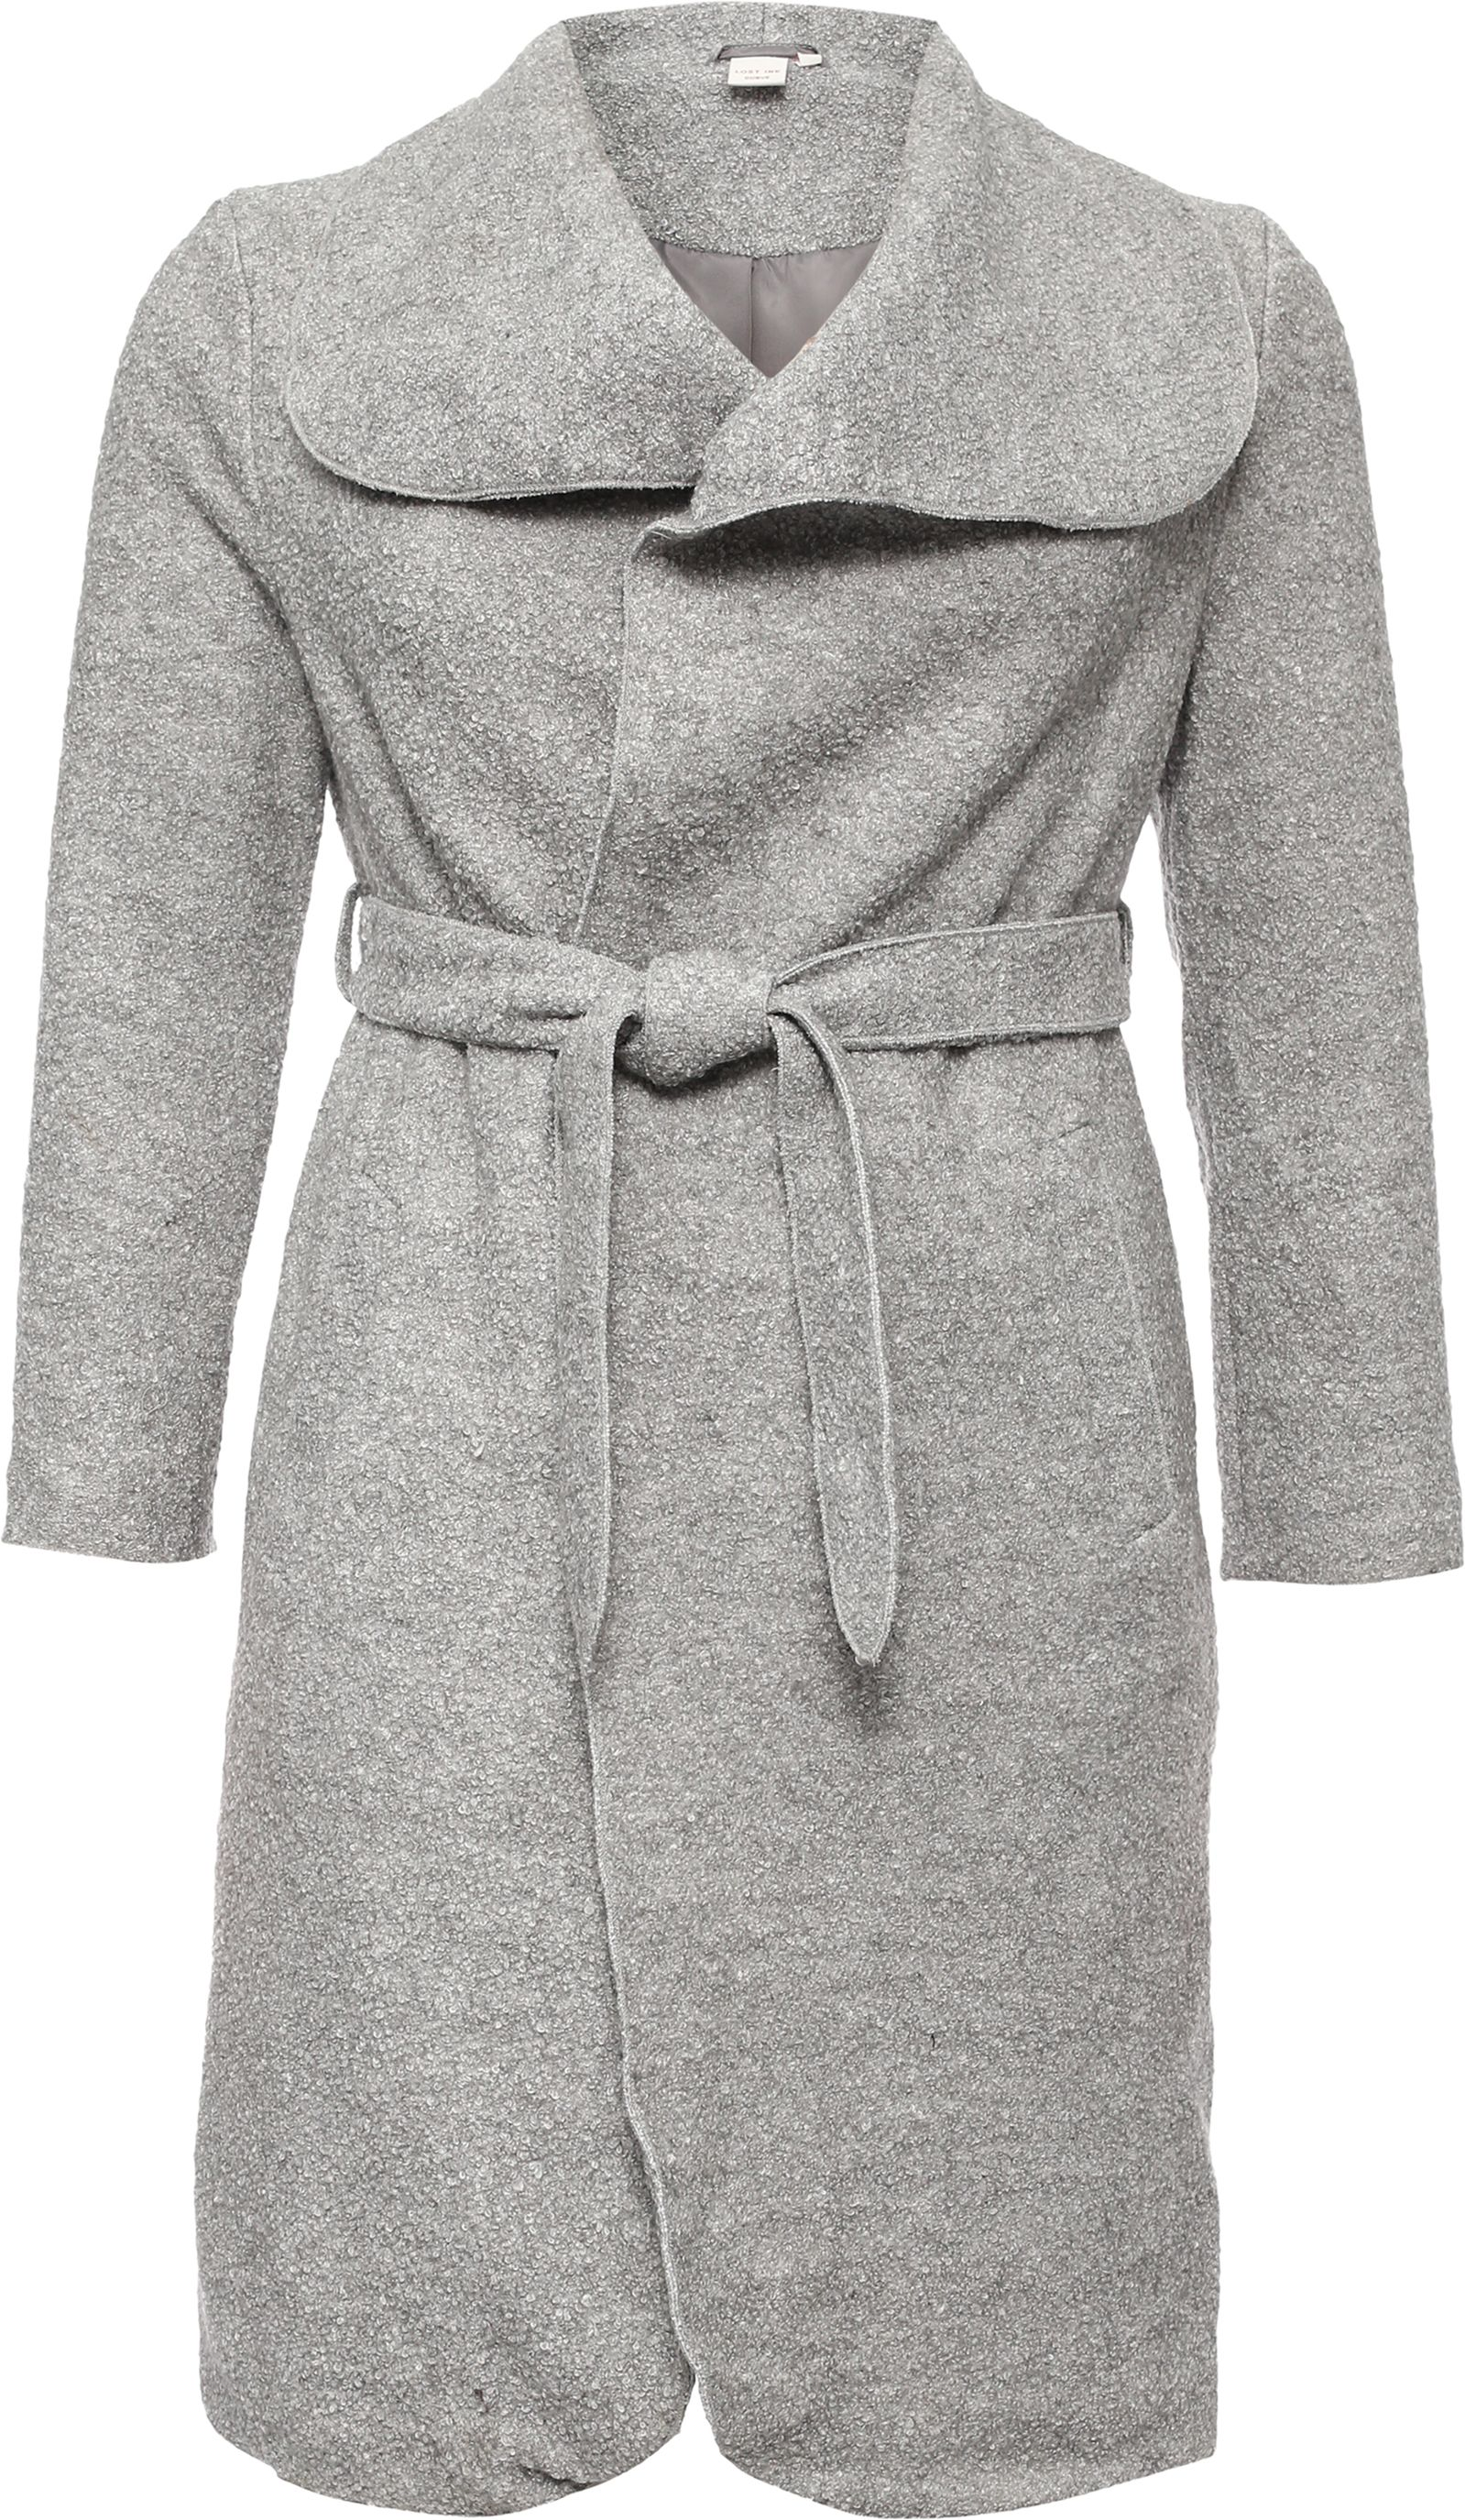 Lost Ink Curve Textured Wool Coat, Grey